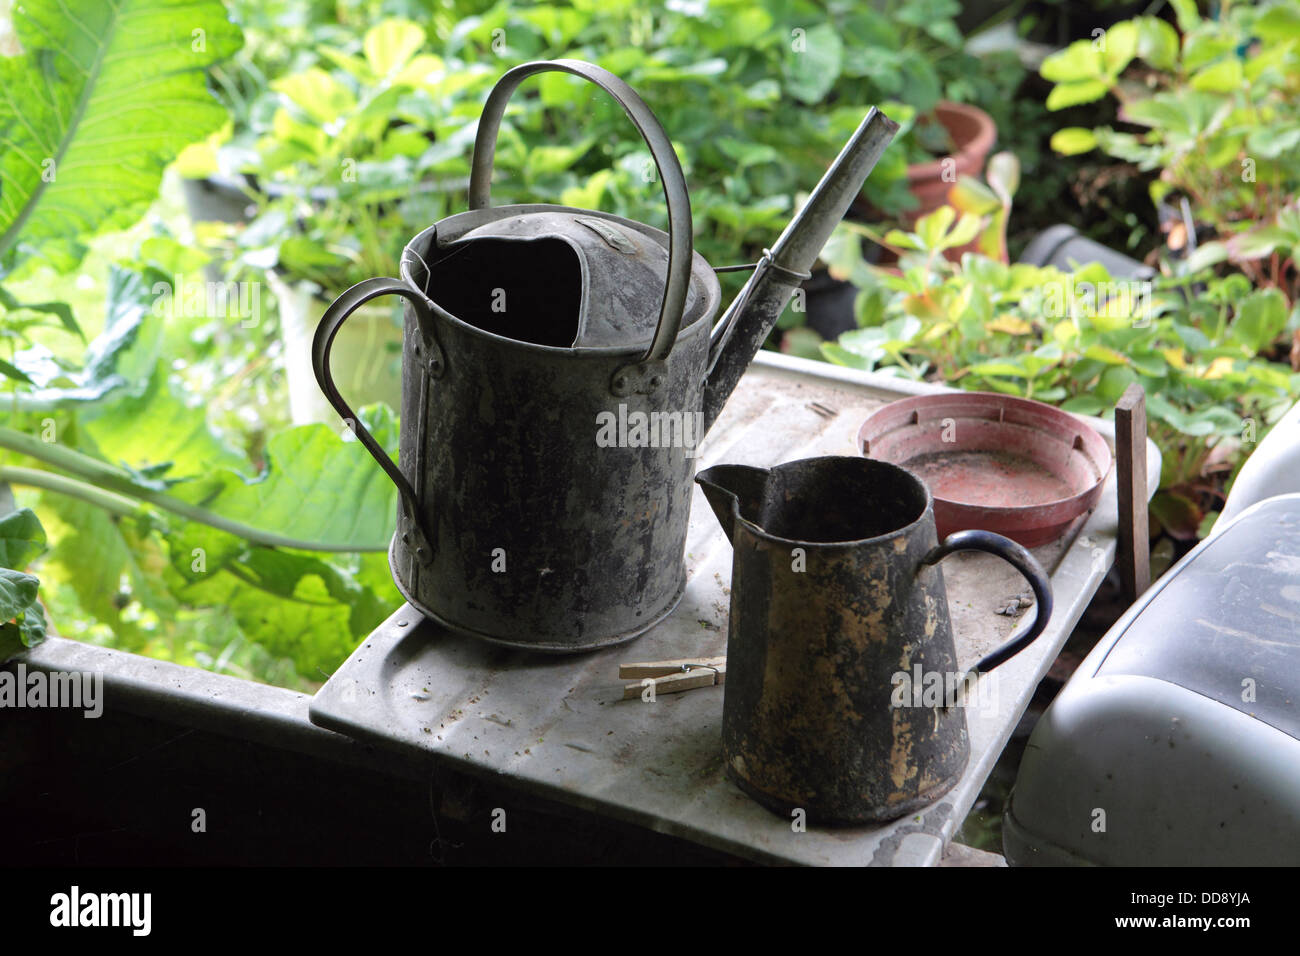 Photograph from the organic potting shed, gardener English garden, UK. Galvanized metal watering can and jug. - Stock Image